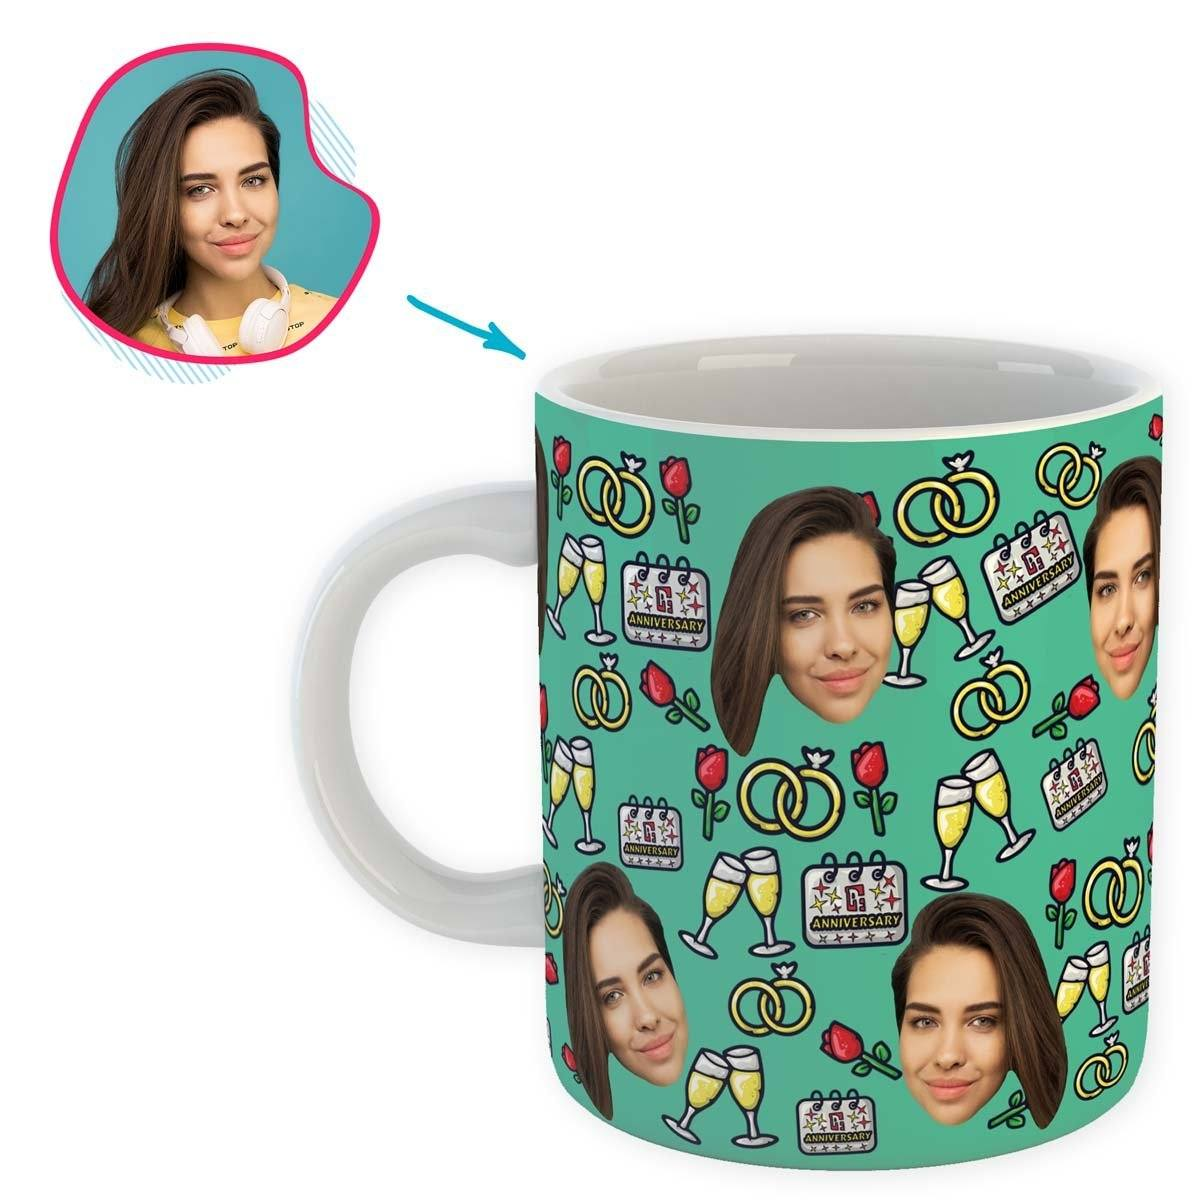 Mint Anniversary personalized mug with photo of face printed on it